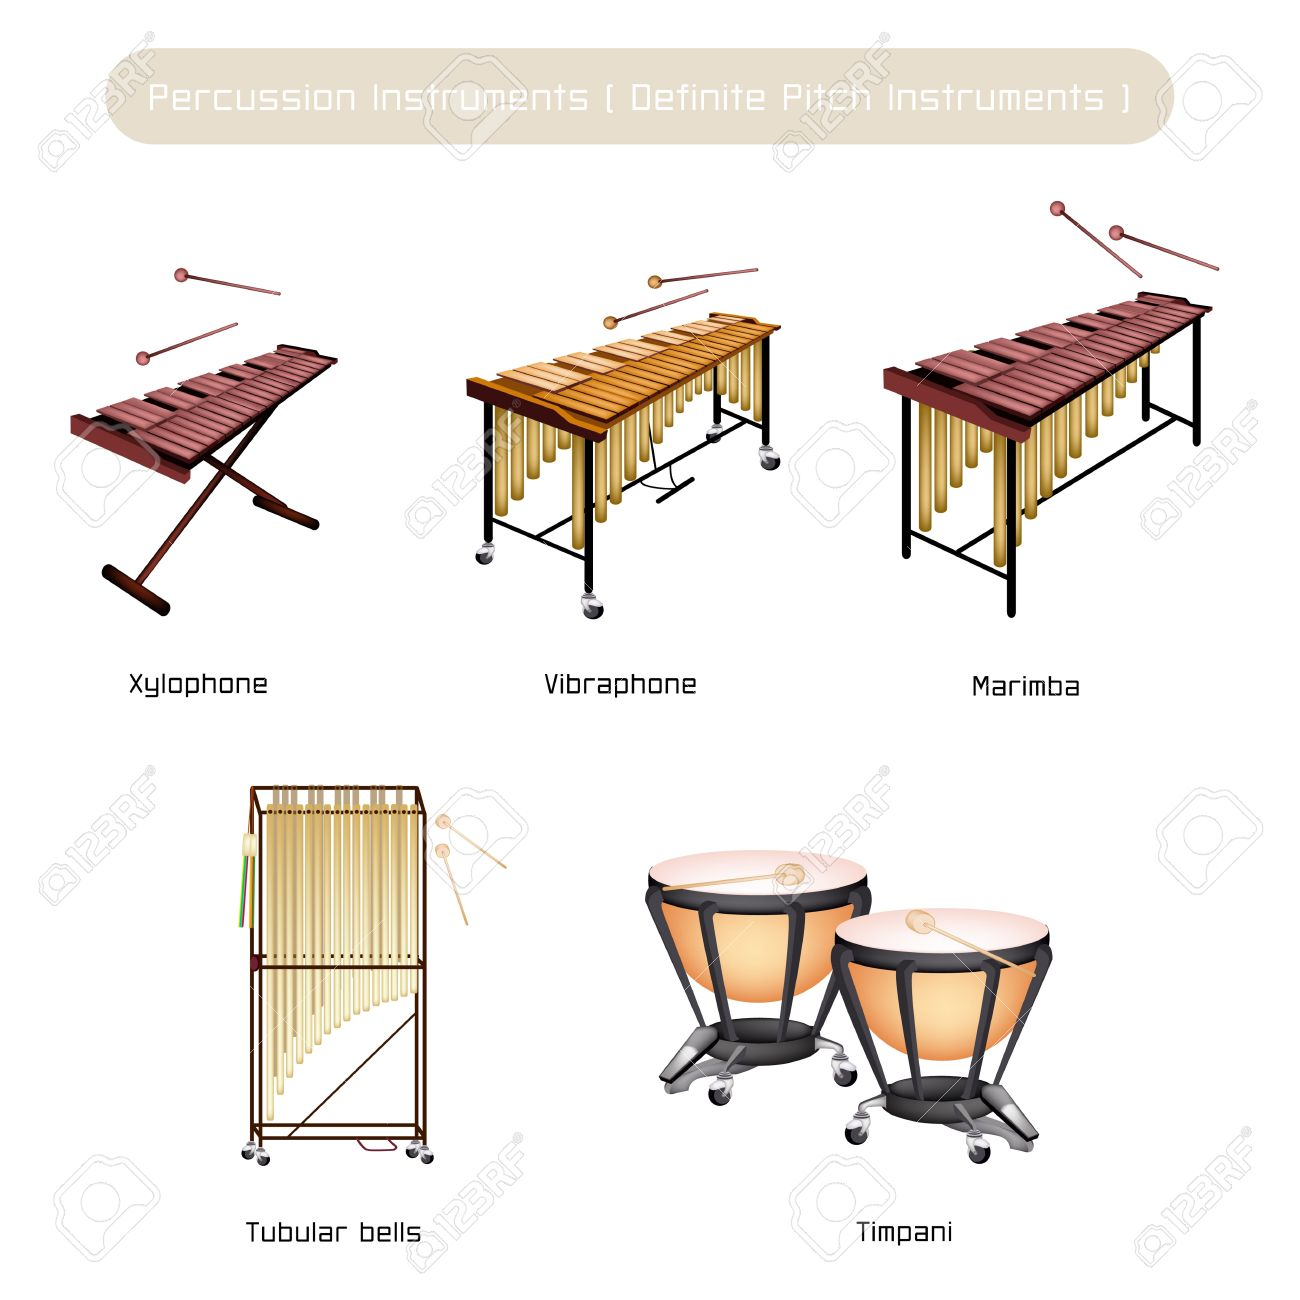 Illustration Brown Color Collection of Vintage Percussion Instruments, Vibraphone, Marimba, Xylophone, Tubular Bells and Timpani Isolated on White Background - 20477796